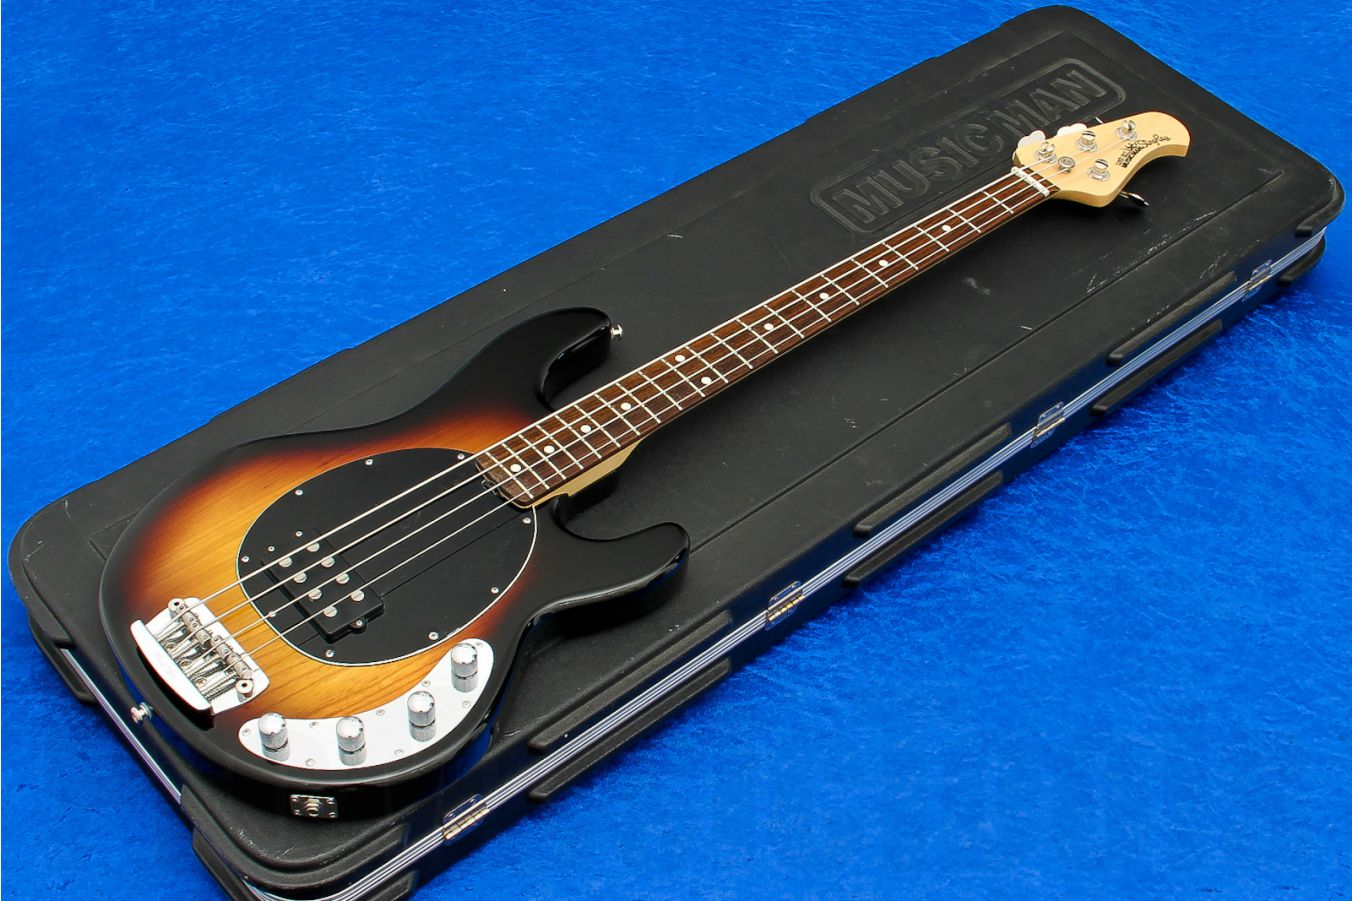 Music Man USA Stingray 4 VSB - Vintage Sunburst RW s/h